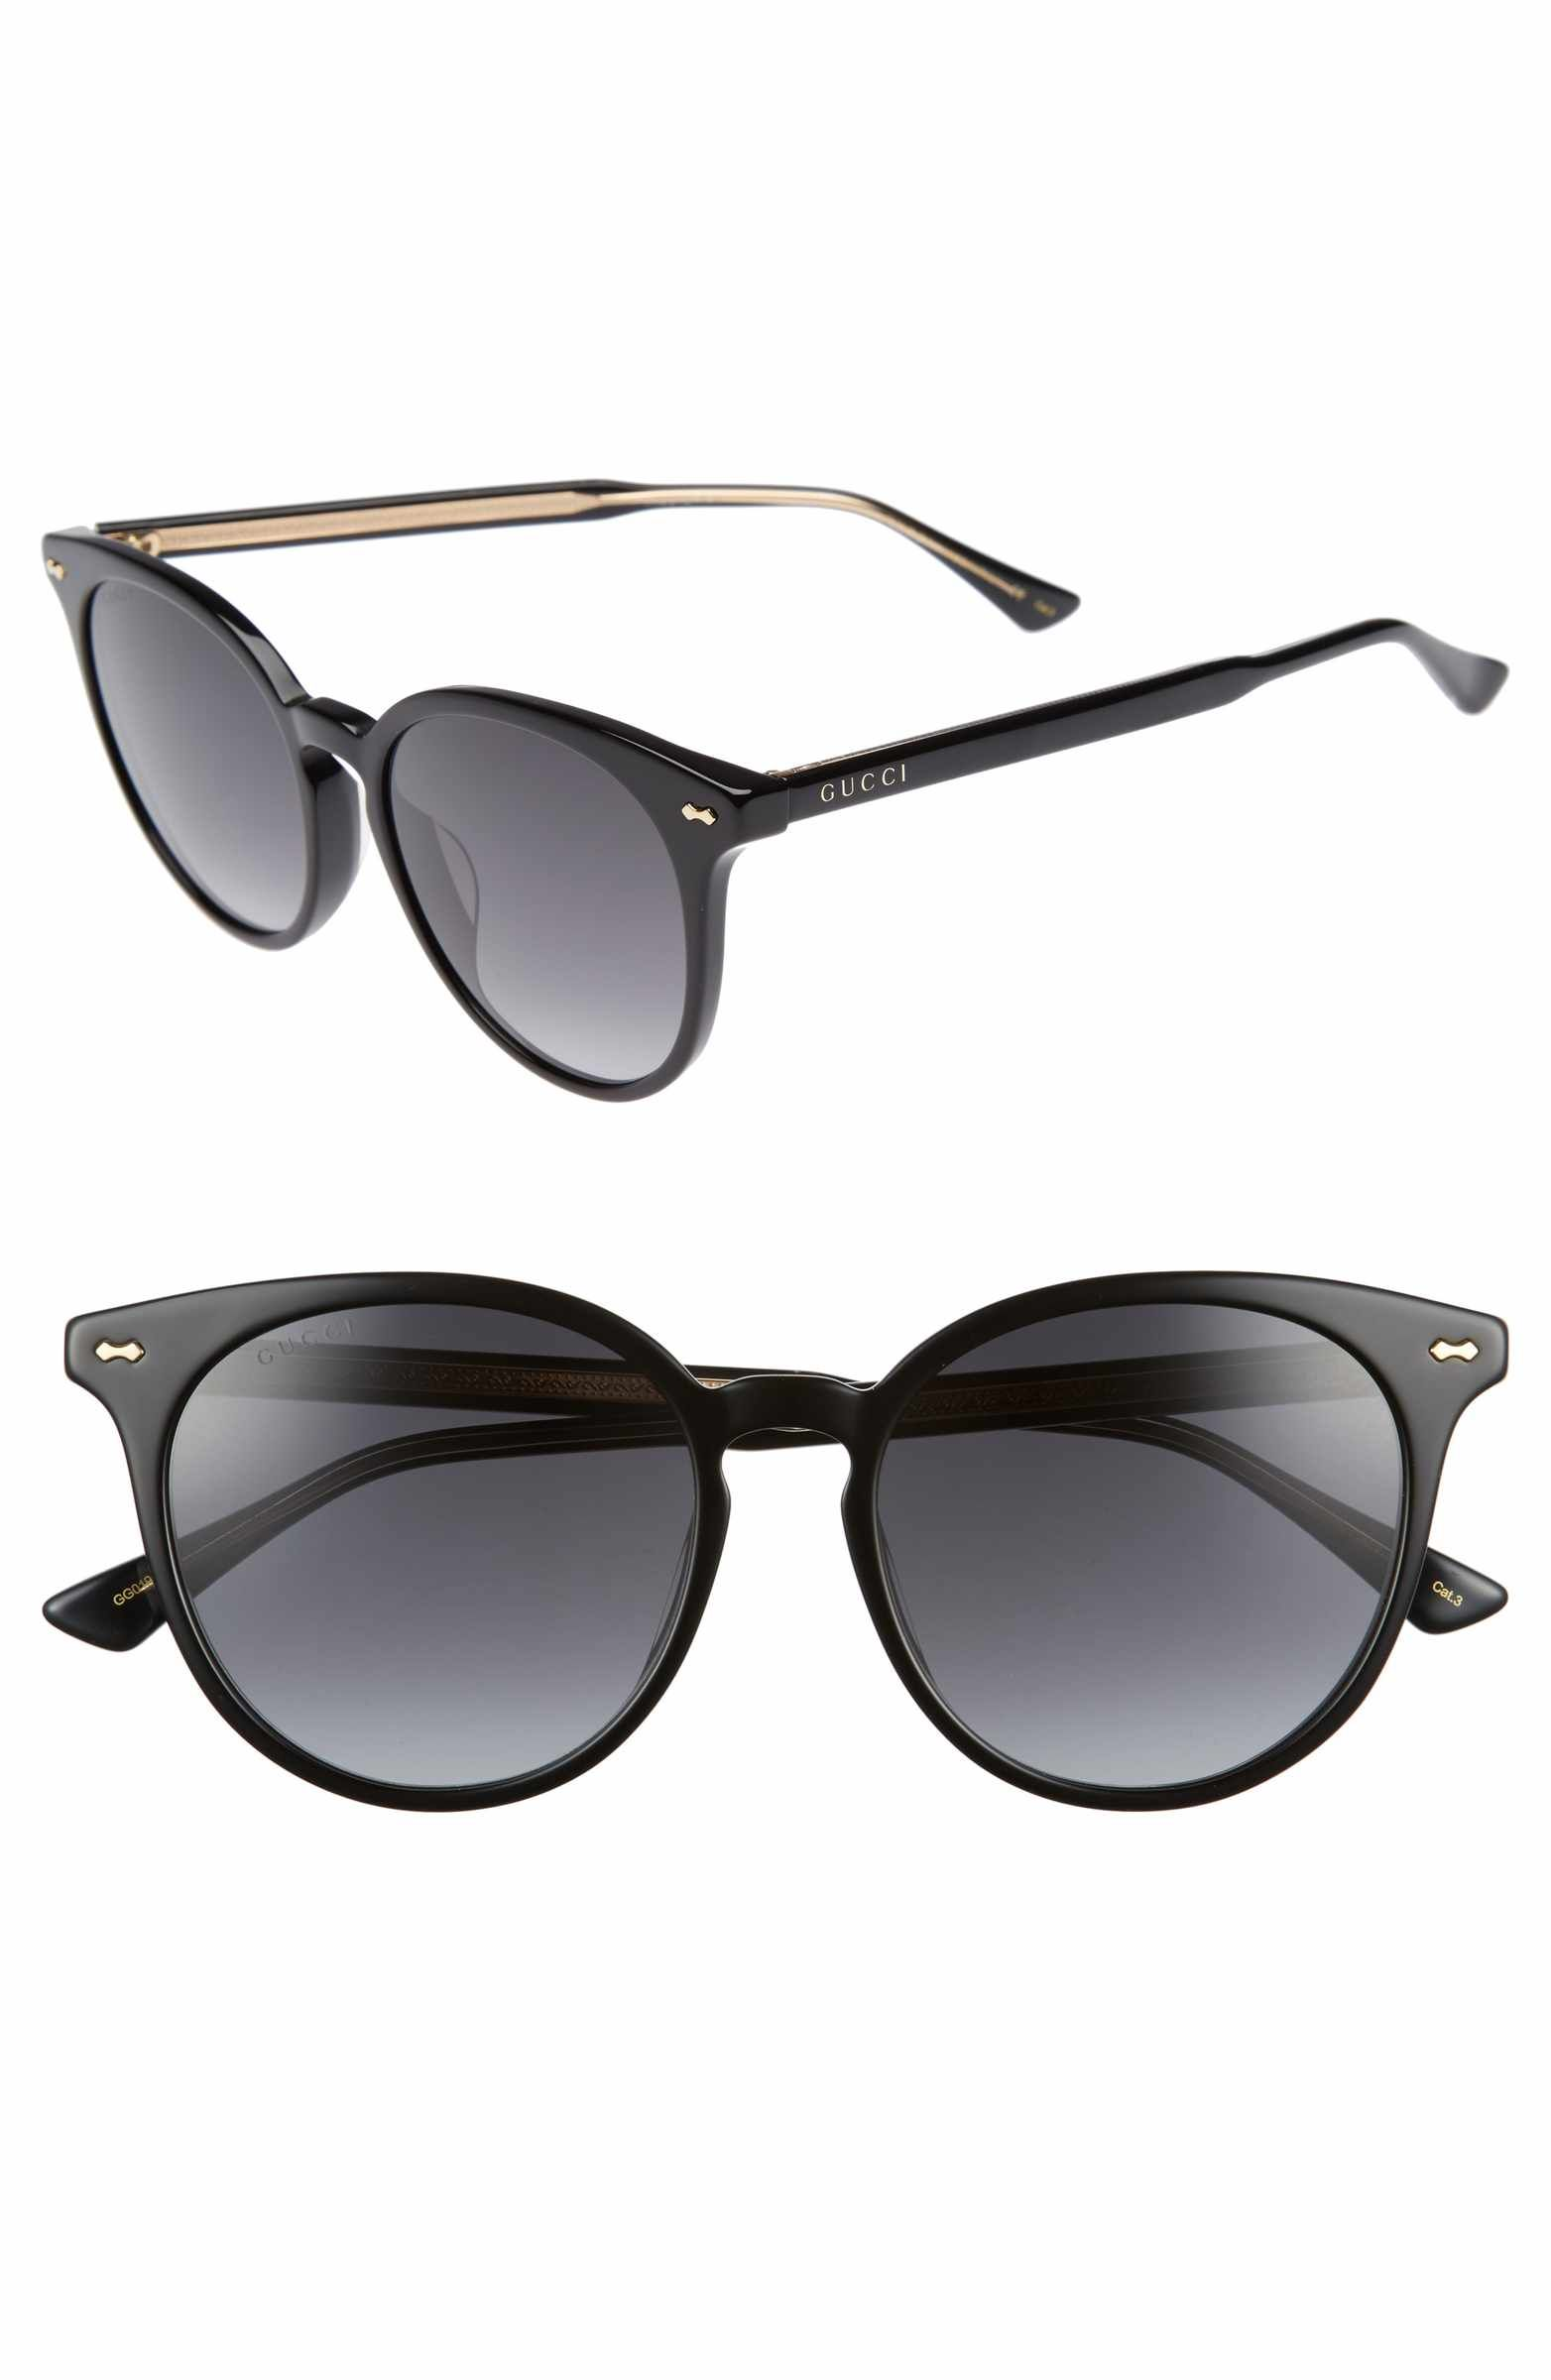 caaf589396509 Main Image - Gucci 55mm Round Cat Eye Sunglasses